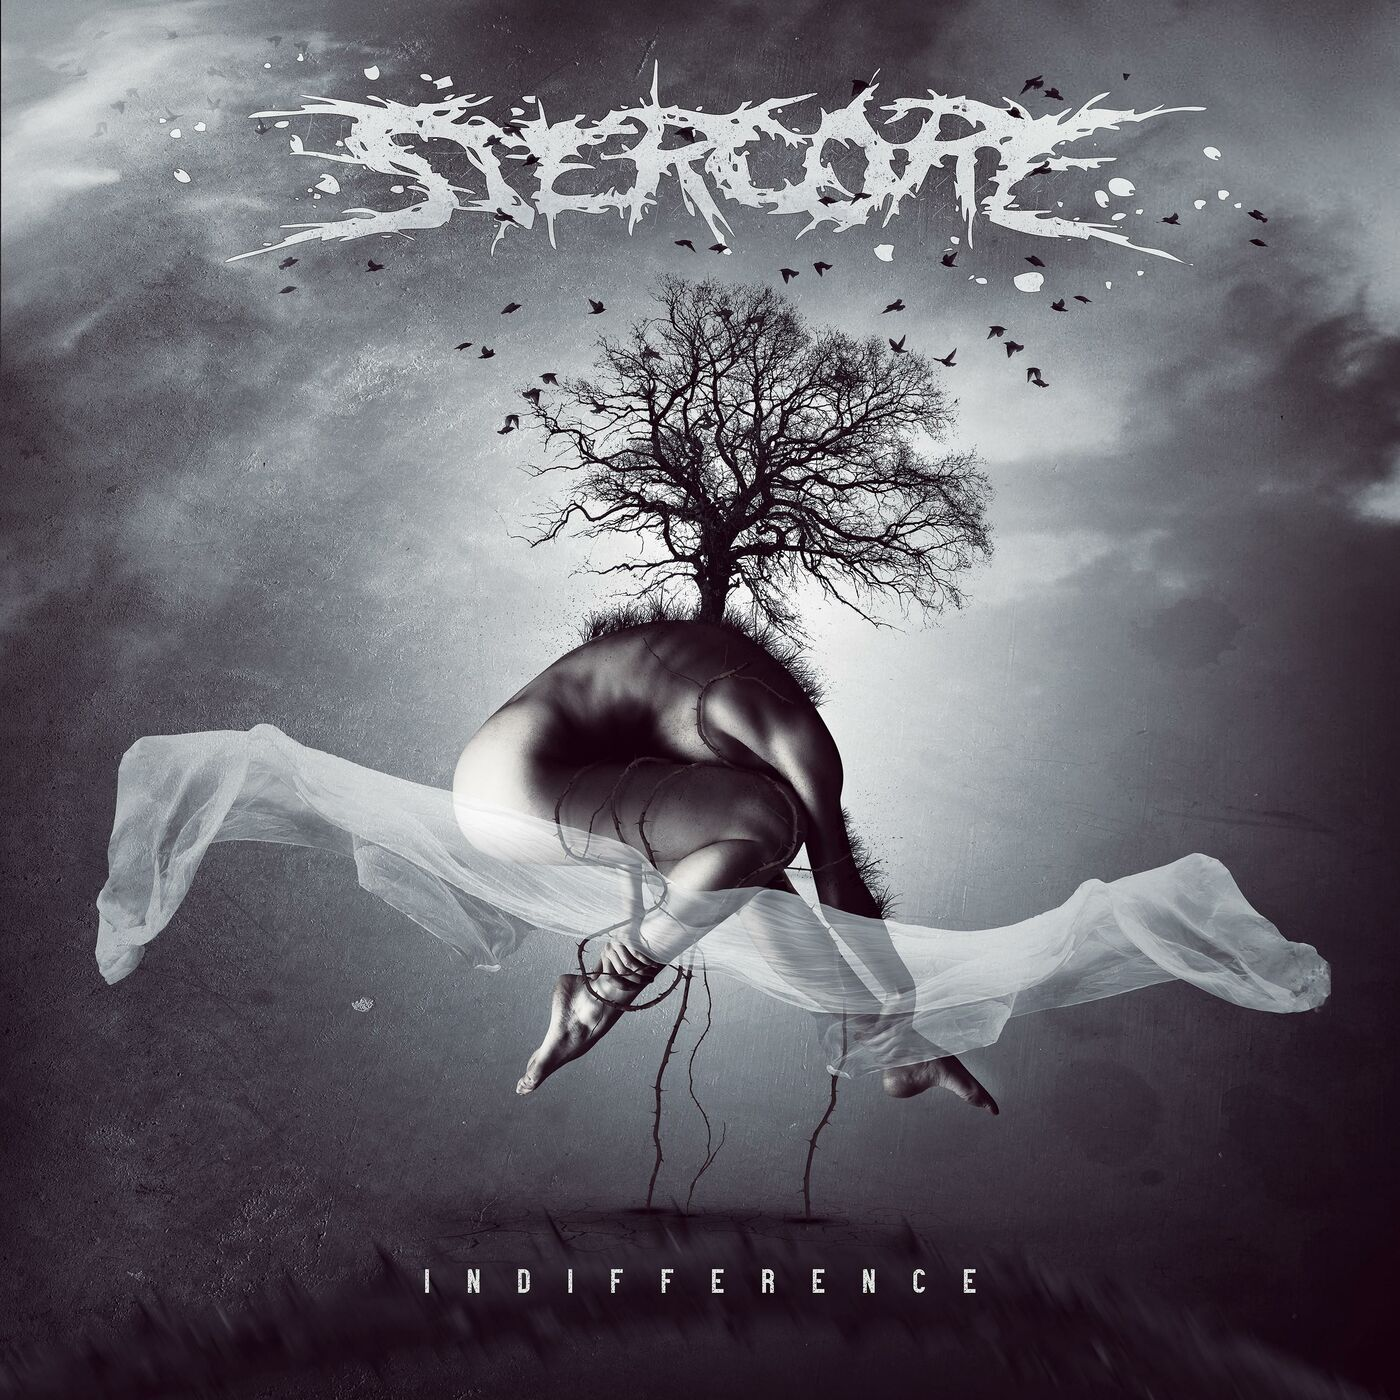 Stercore - Indifference (2019)